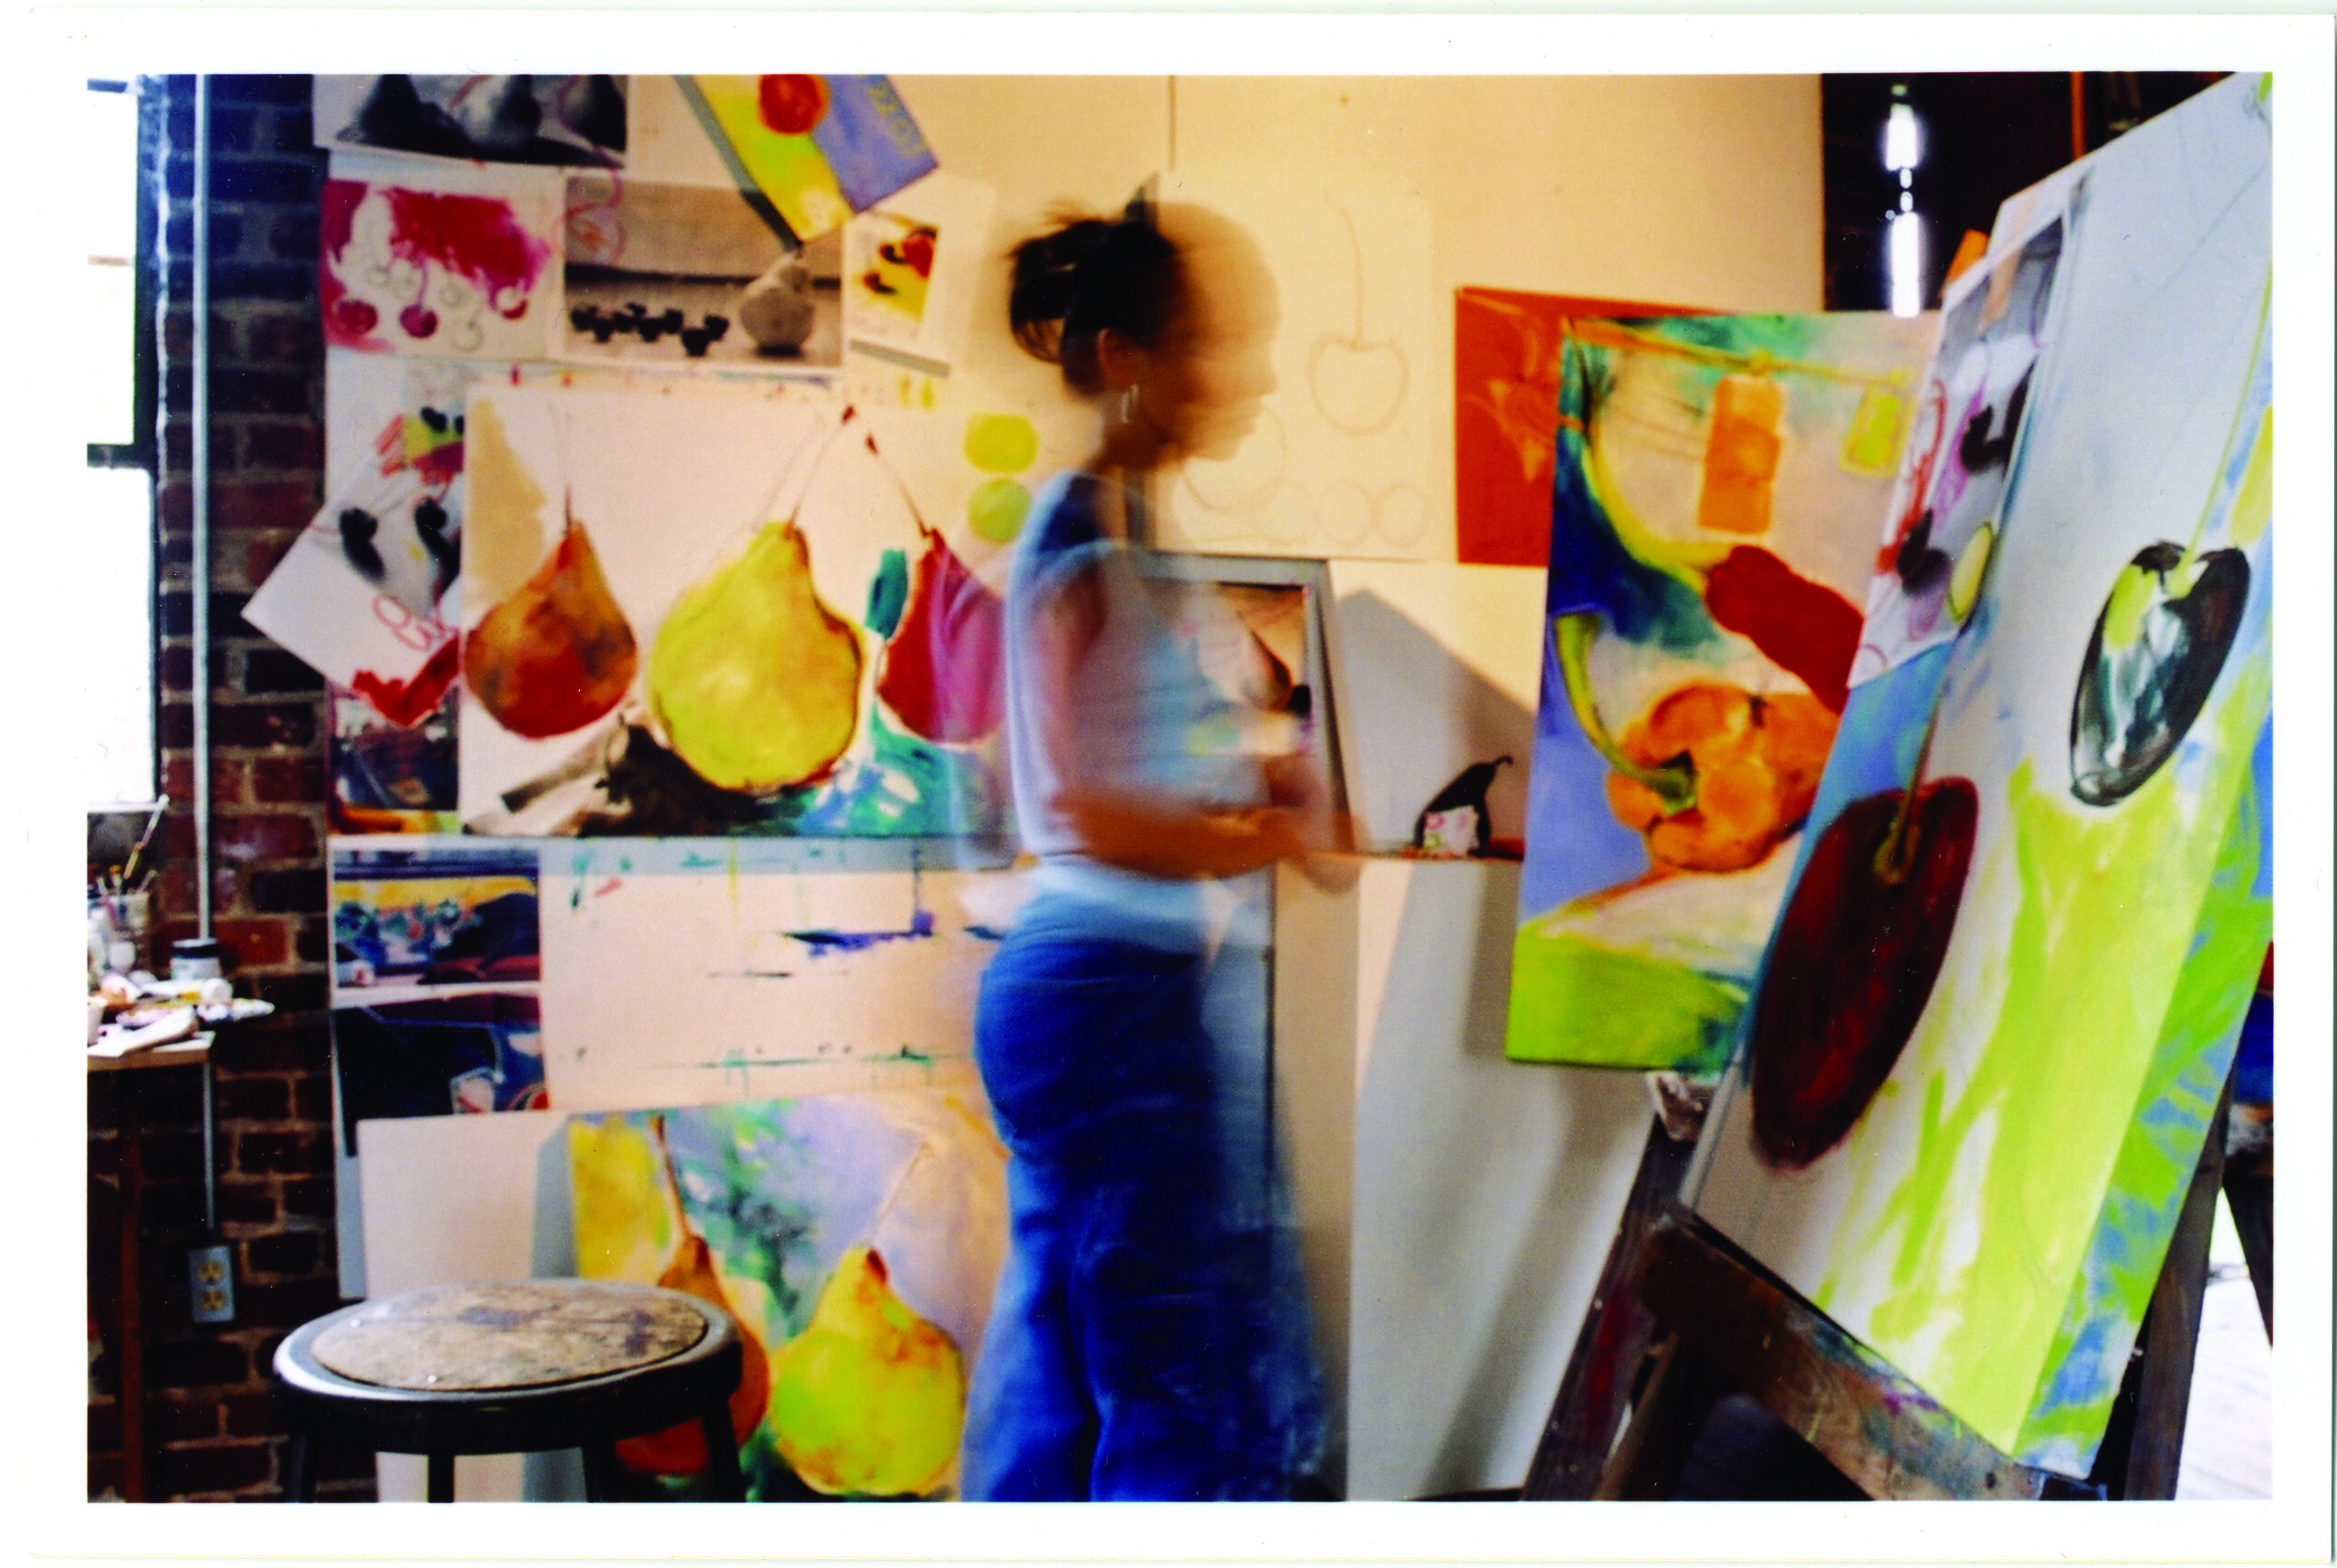 Blurry image of a woman walking through an art studio crowded with paintings